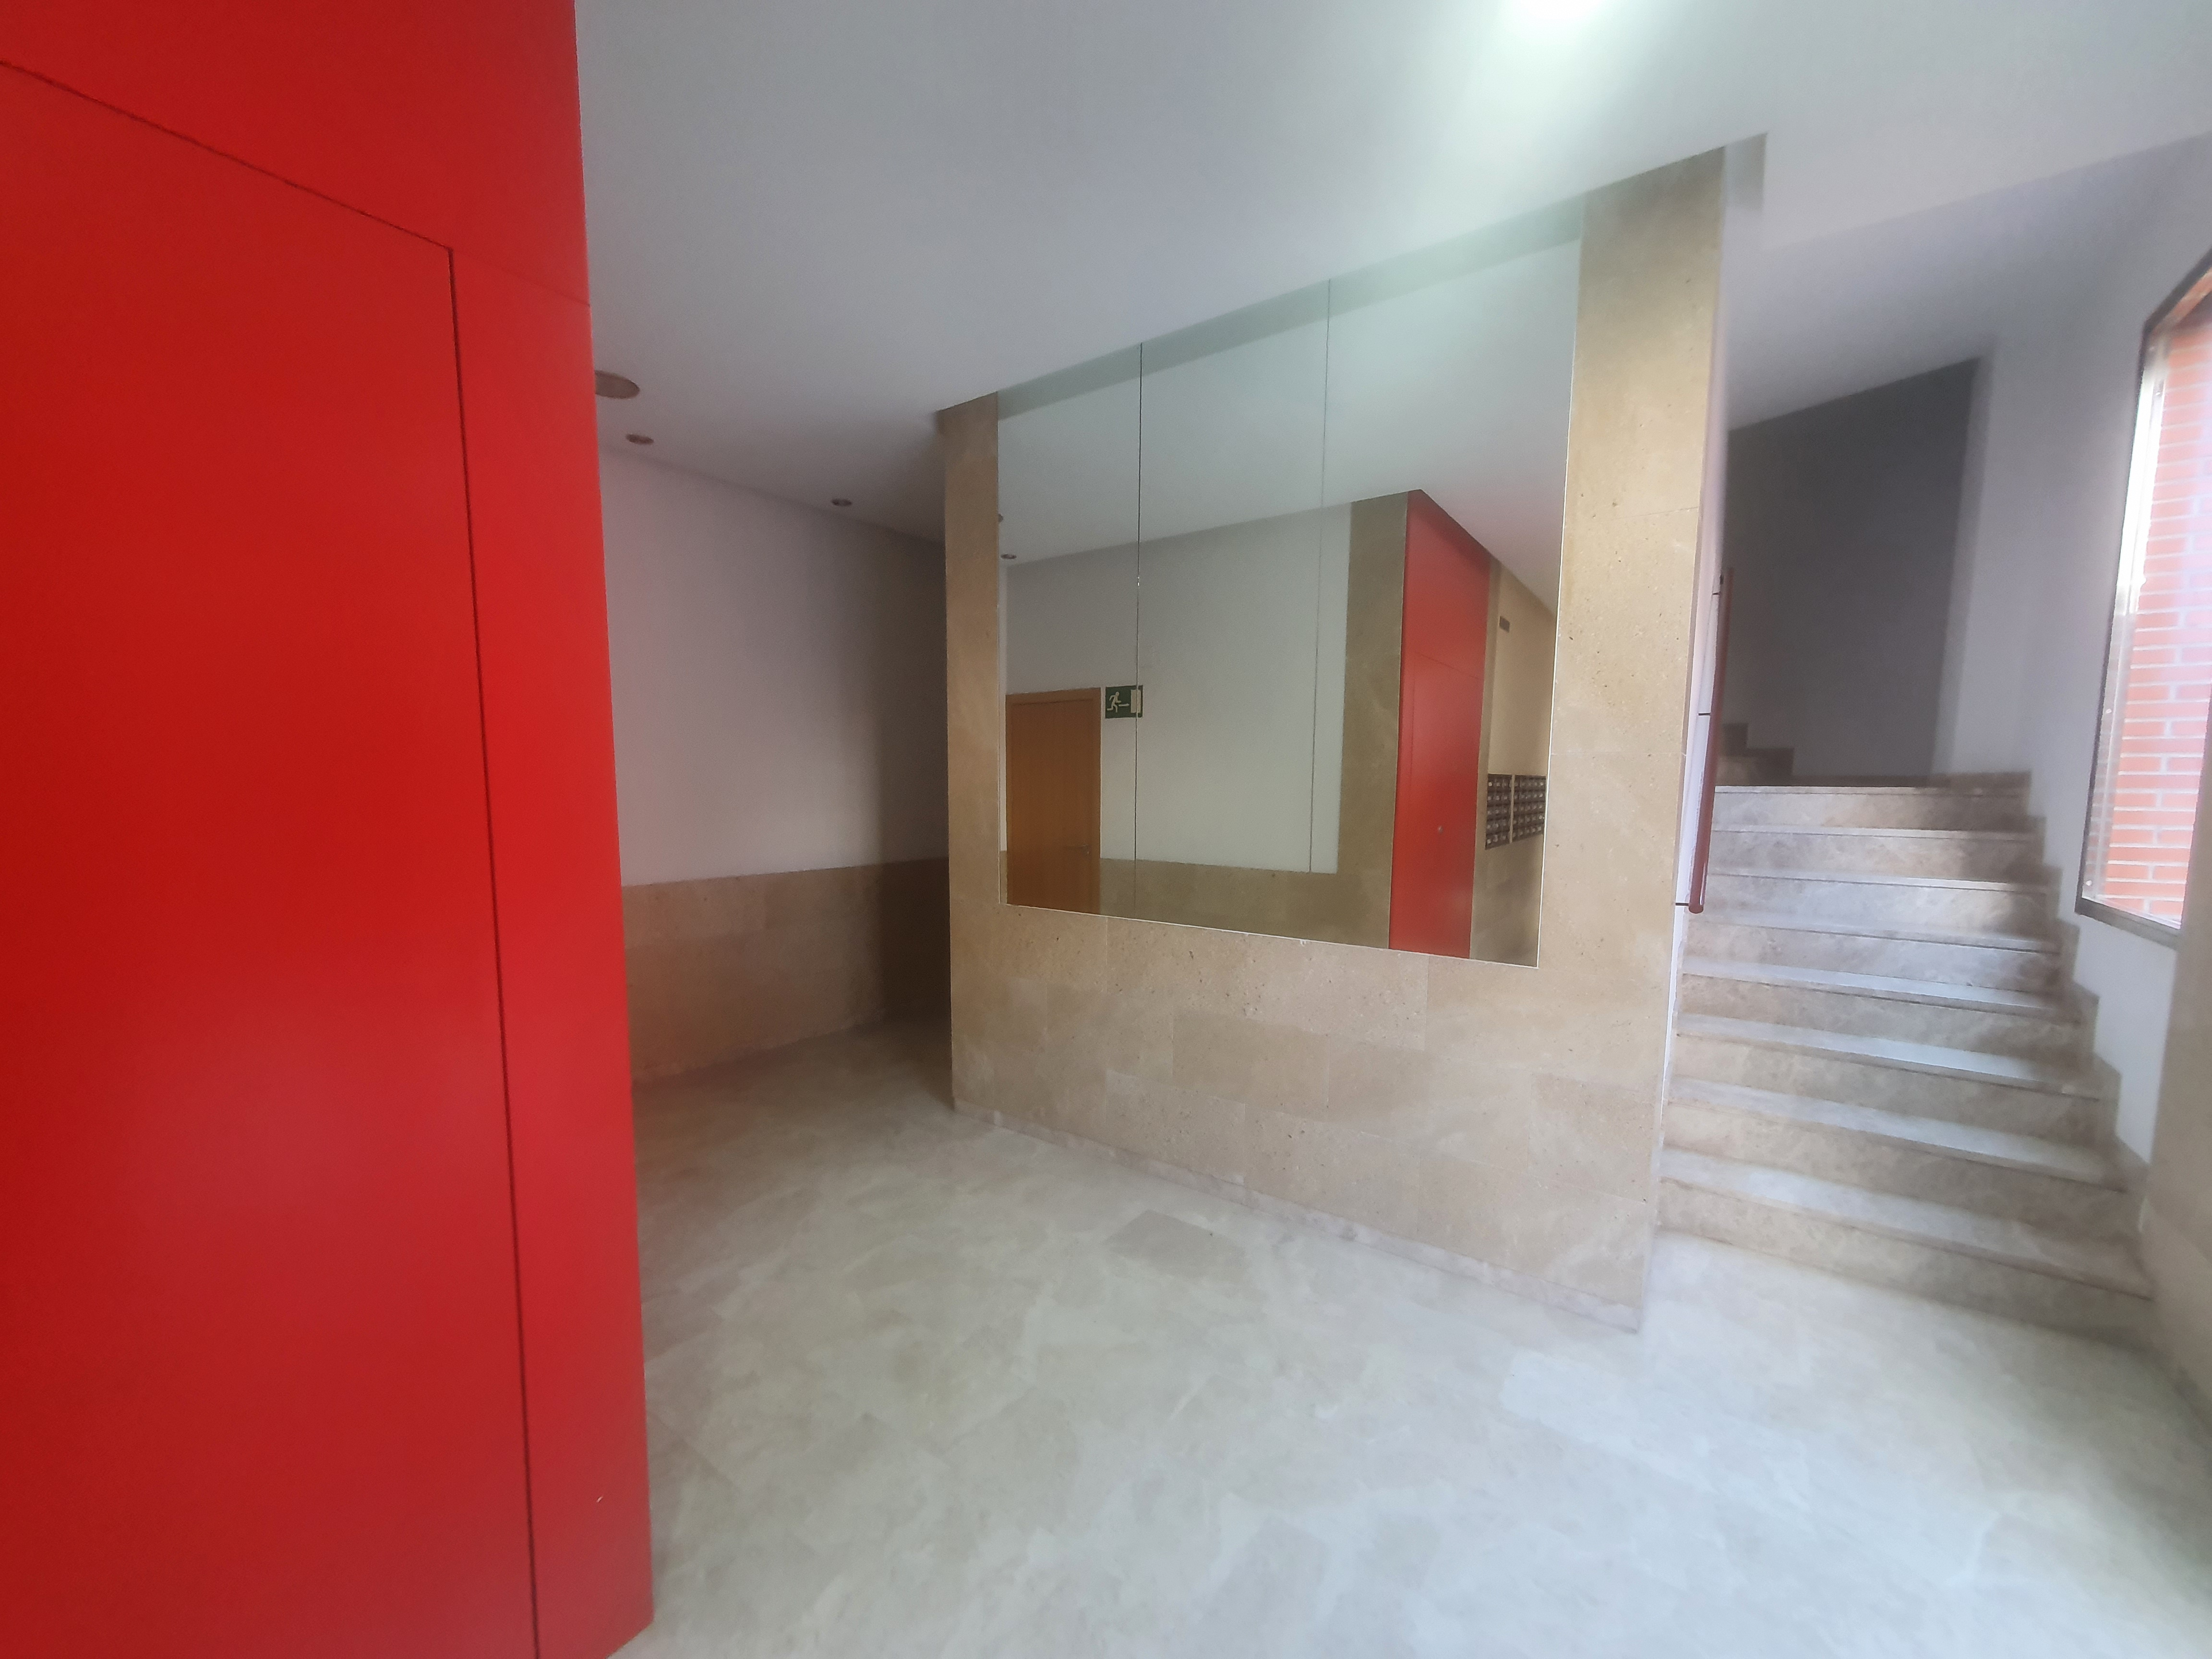 kf943059: Apartment for sale in Aljucer